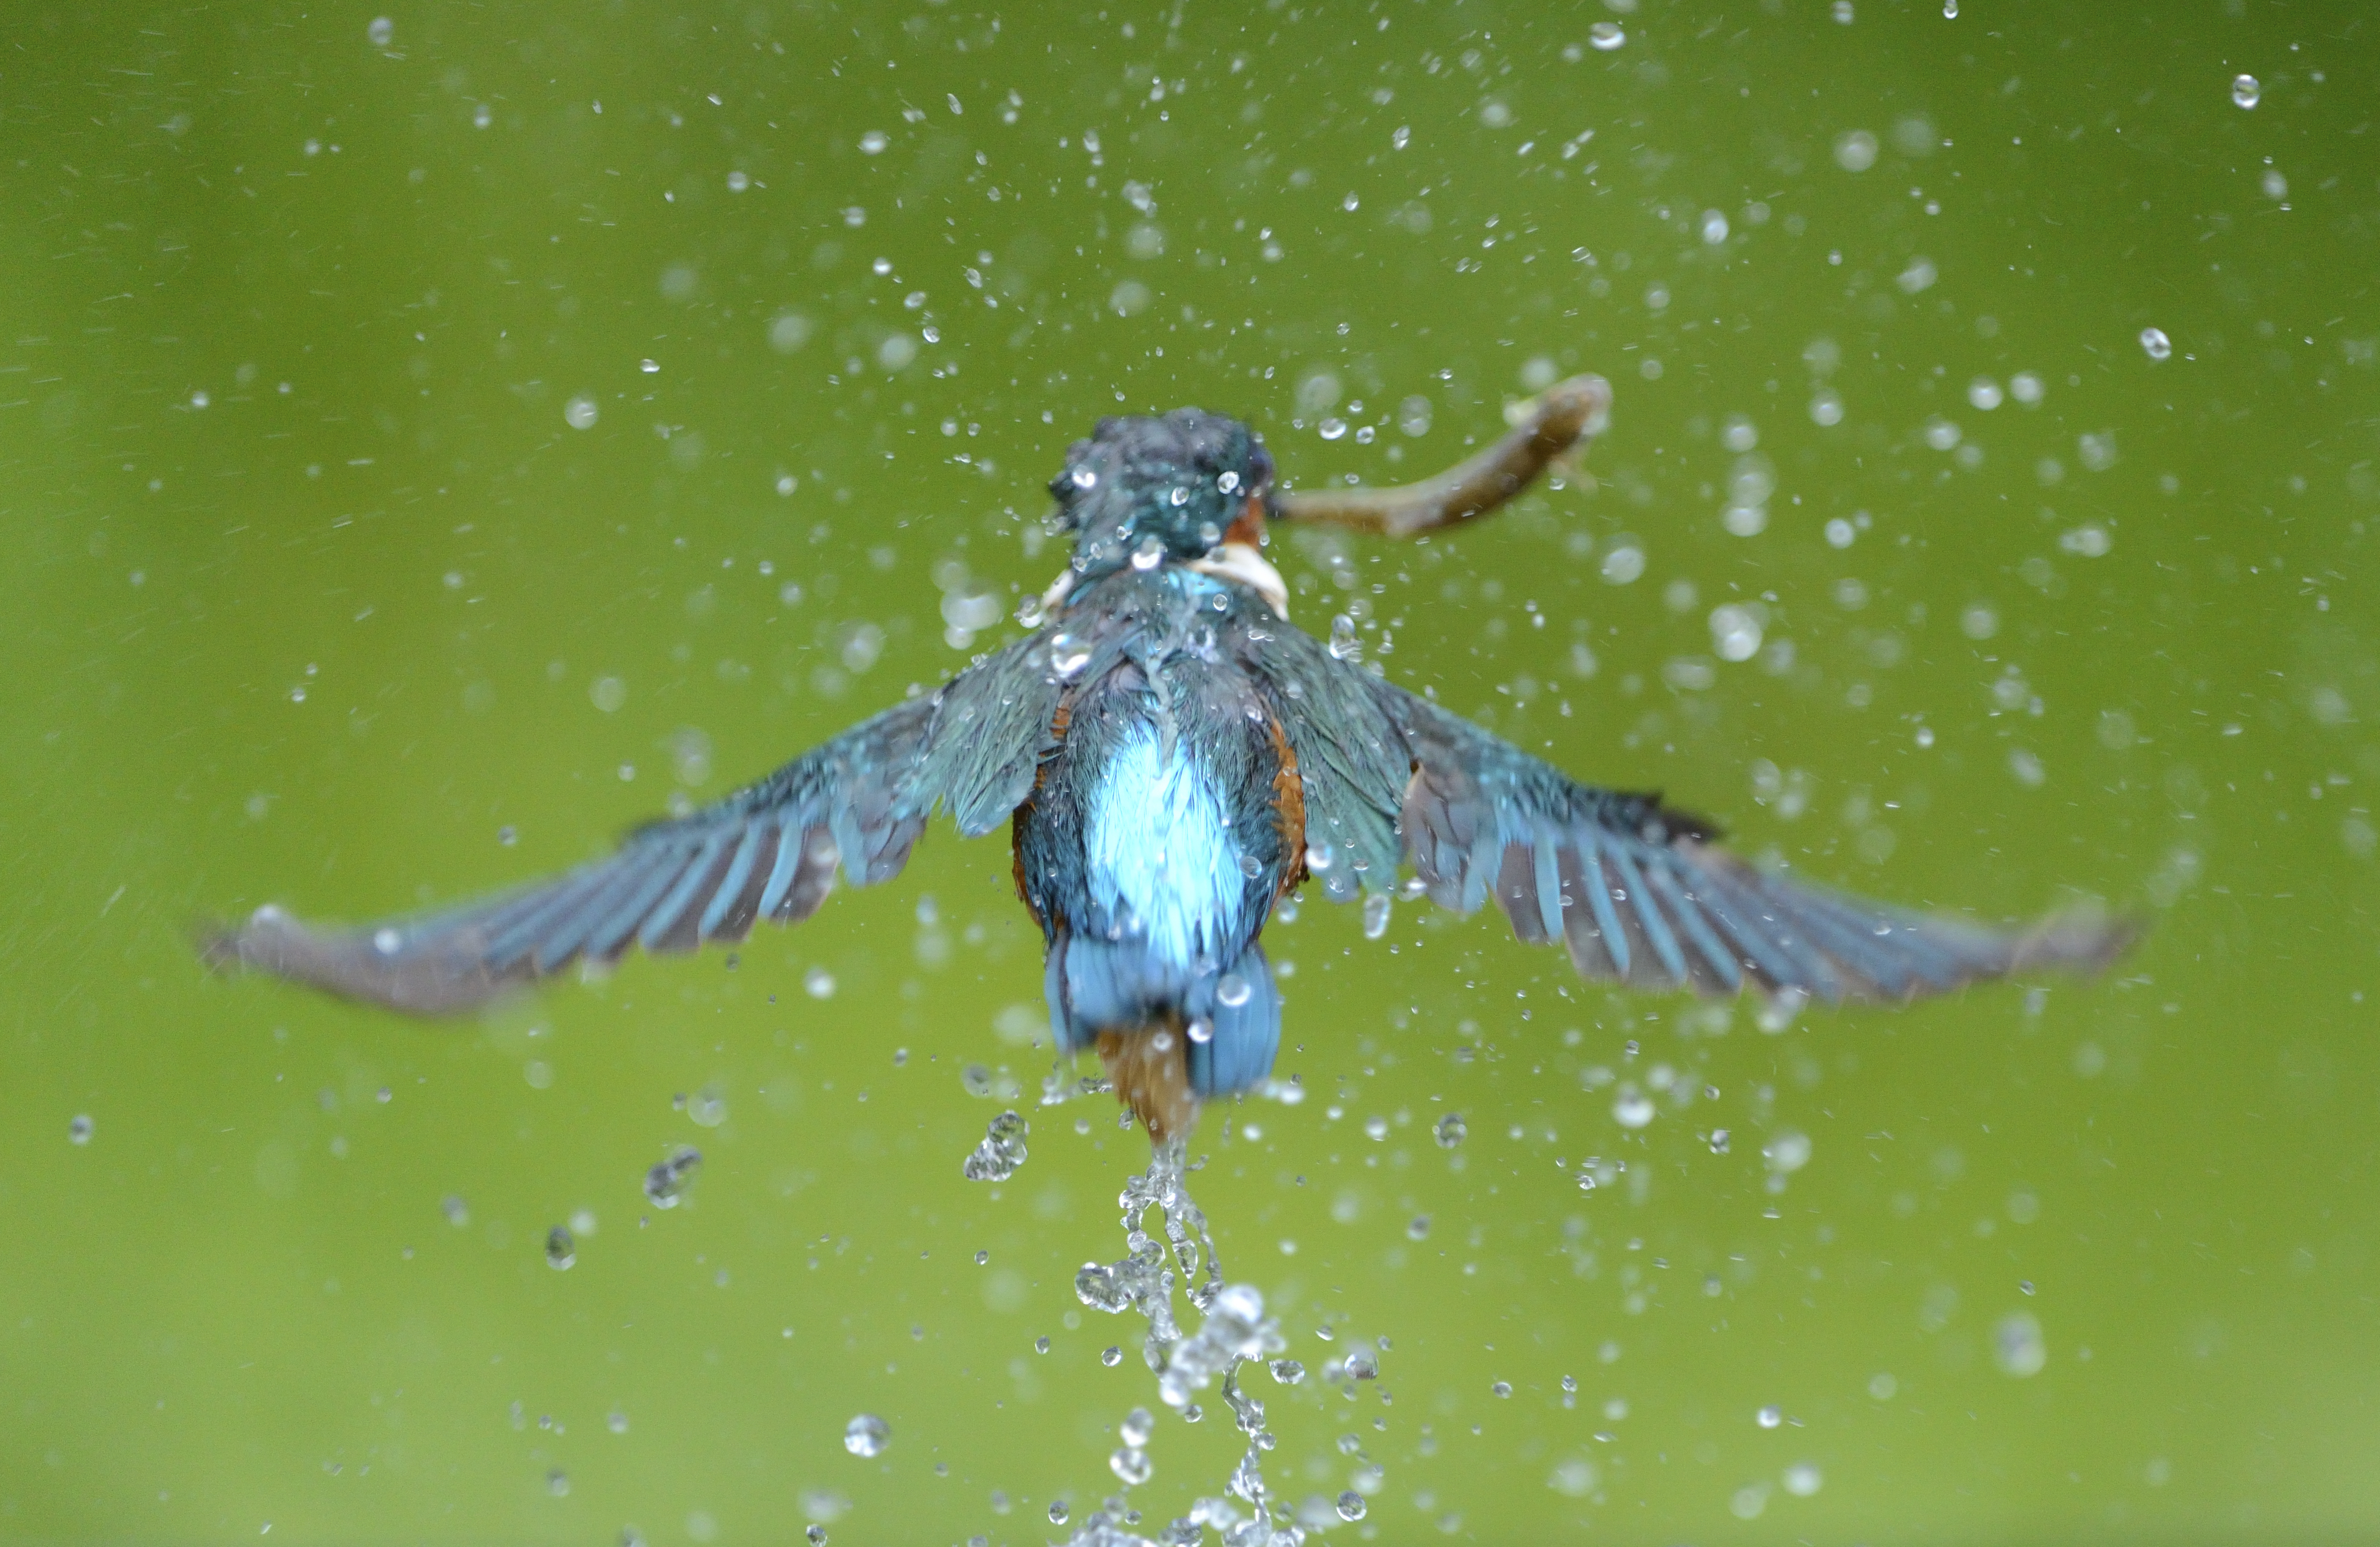 Kingfisher Threats - The RSPB